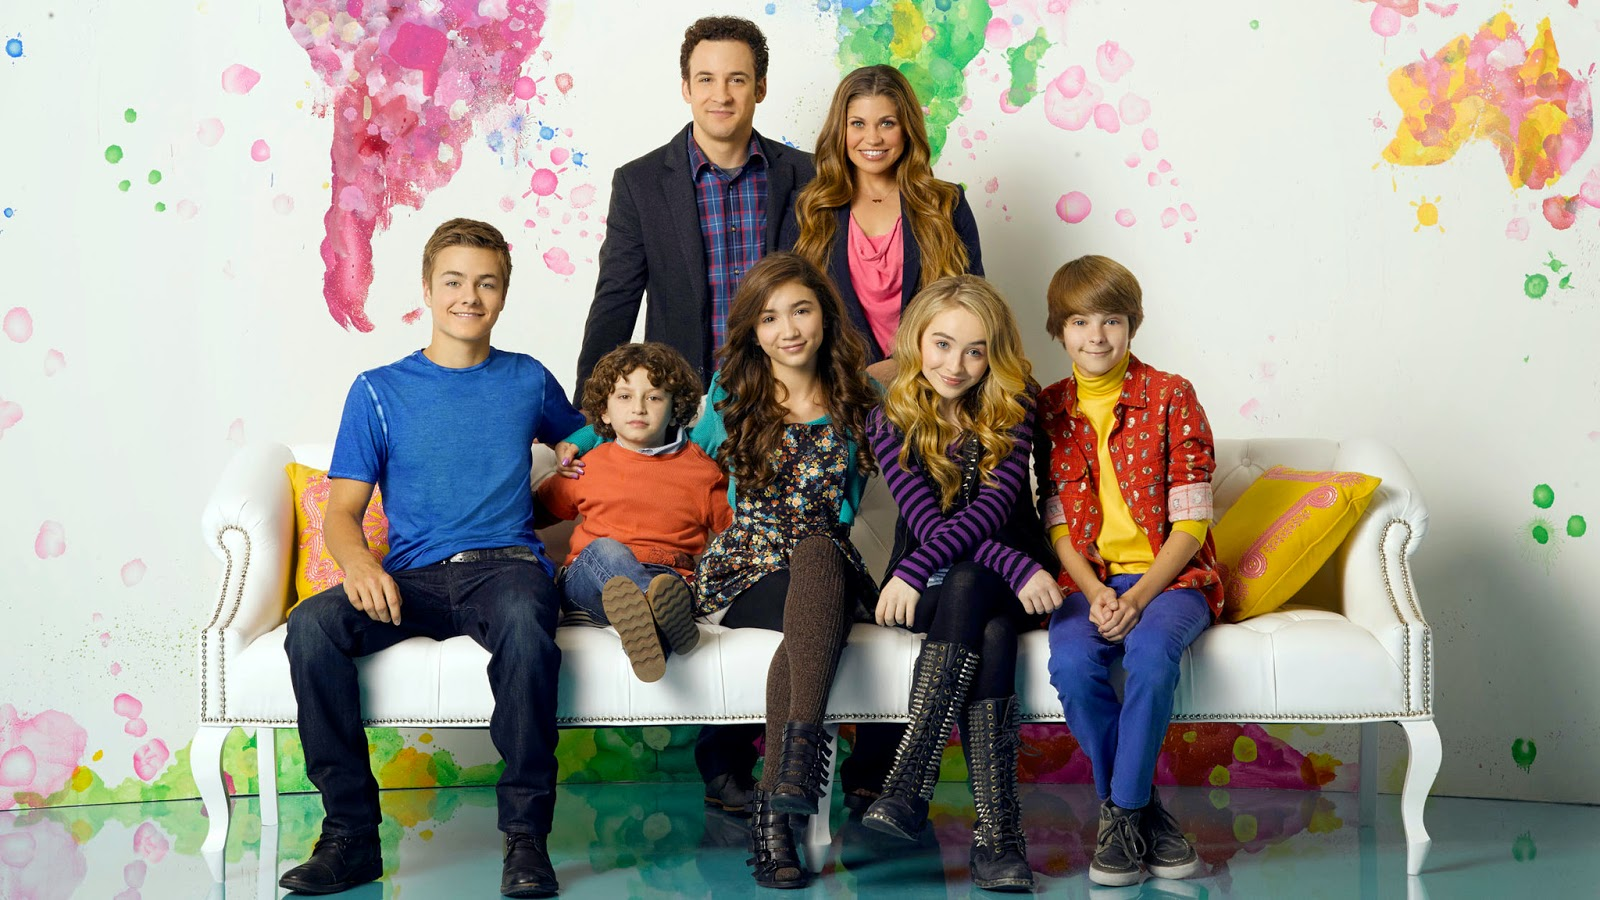 girl meets world new tv series The disney channel series' final episode features its biggest 'boy meets world' cast reunion yet.